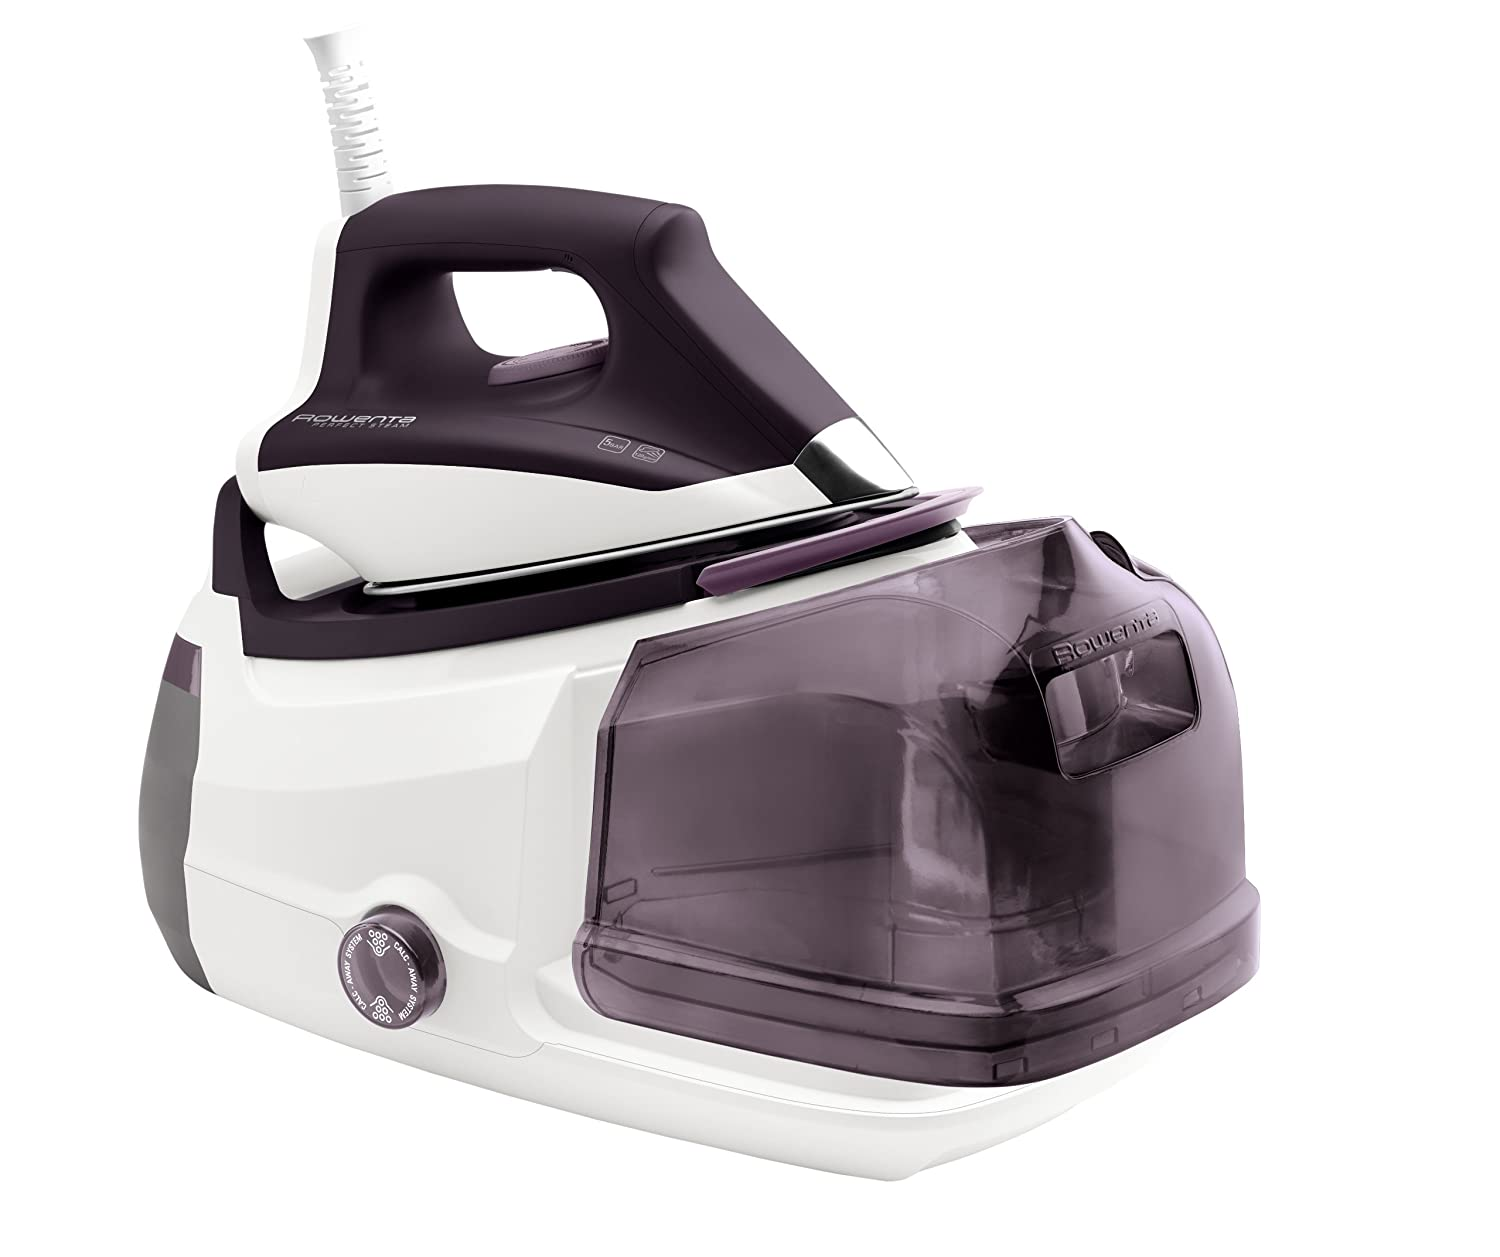 Cleaning rowenta pressure iron and steamer - Cleaning Rowenta Pressure Iron And Steamer 34